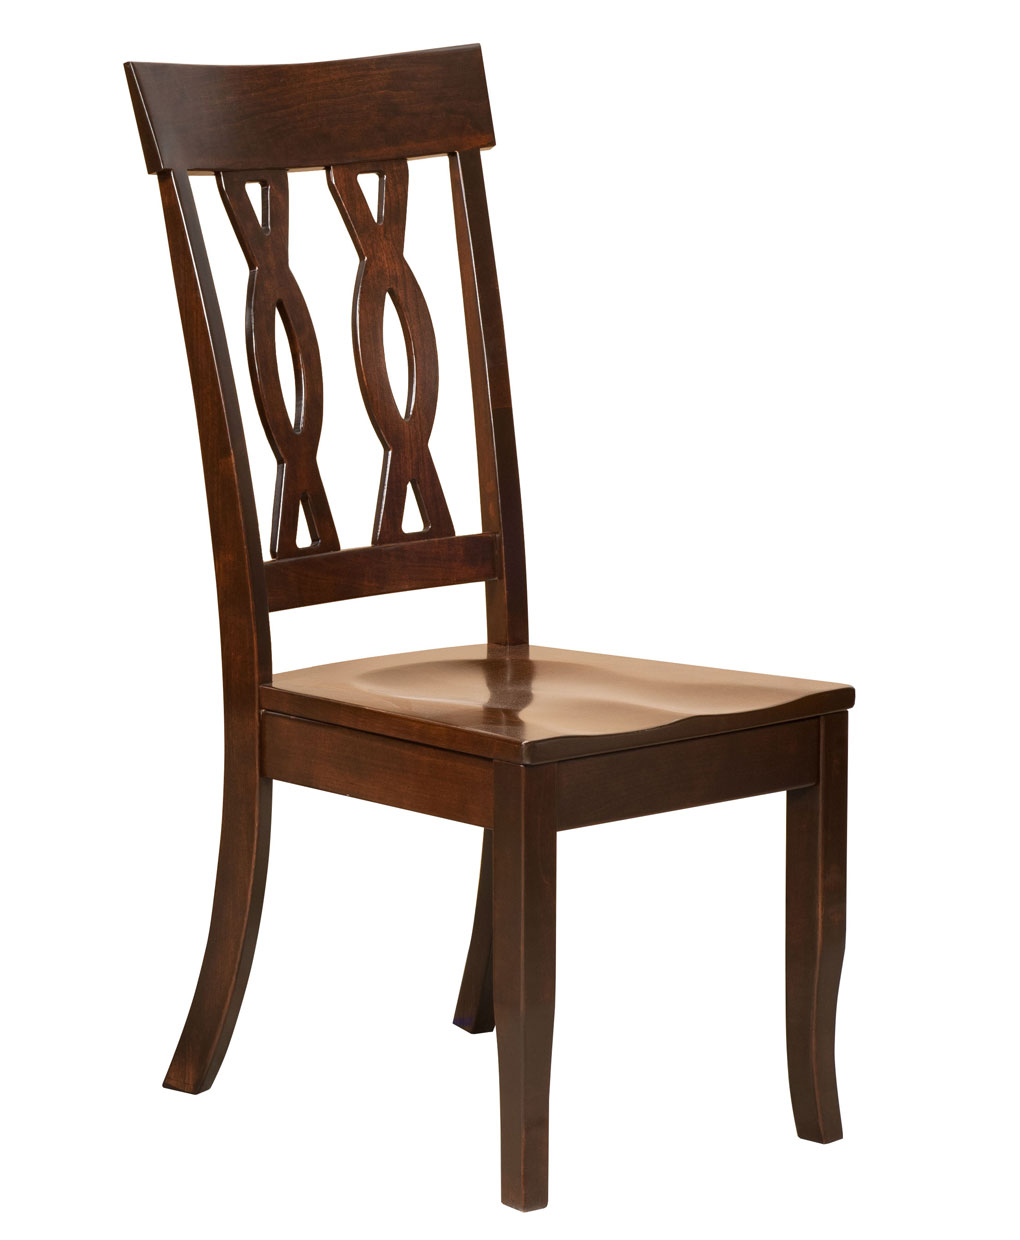 Gallery pictures for good quality dining chairs carson armchair amish - Carson Amish Dining Chair Side